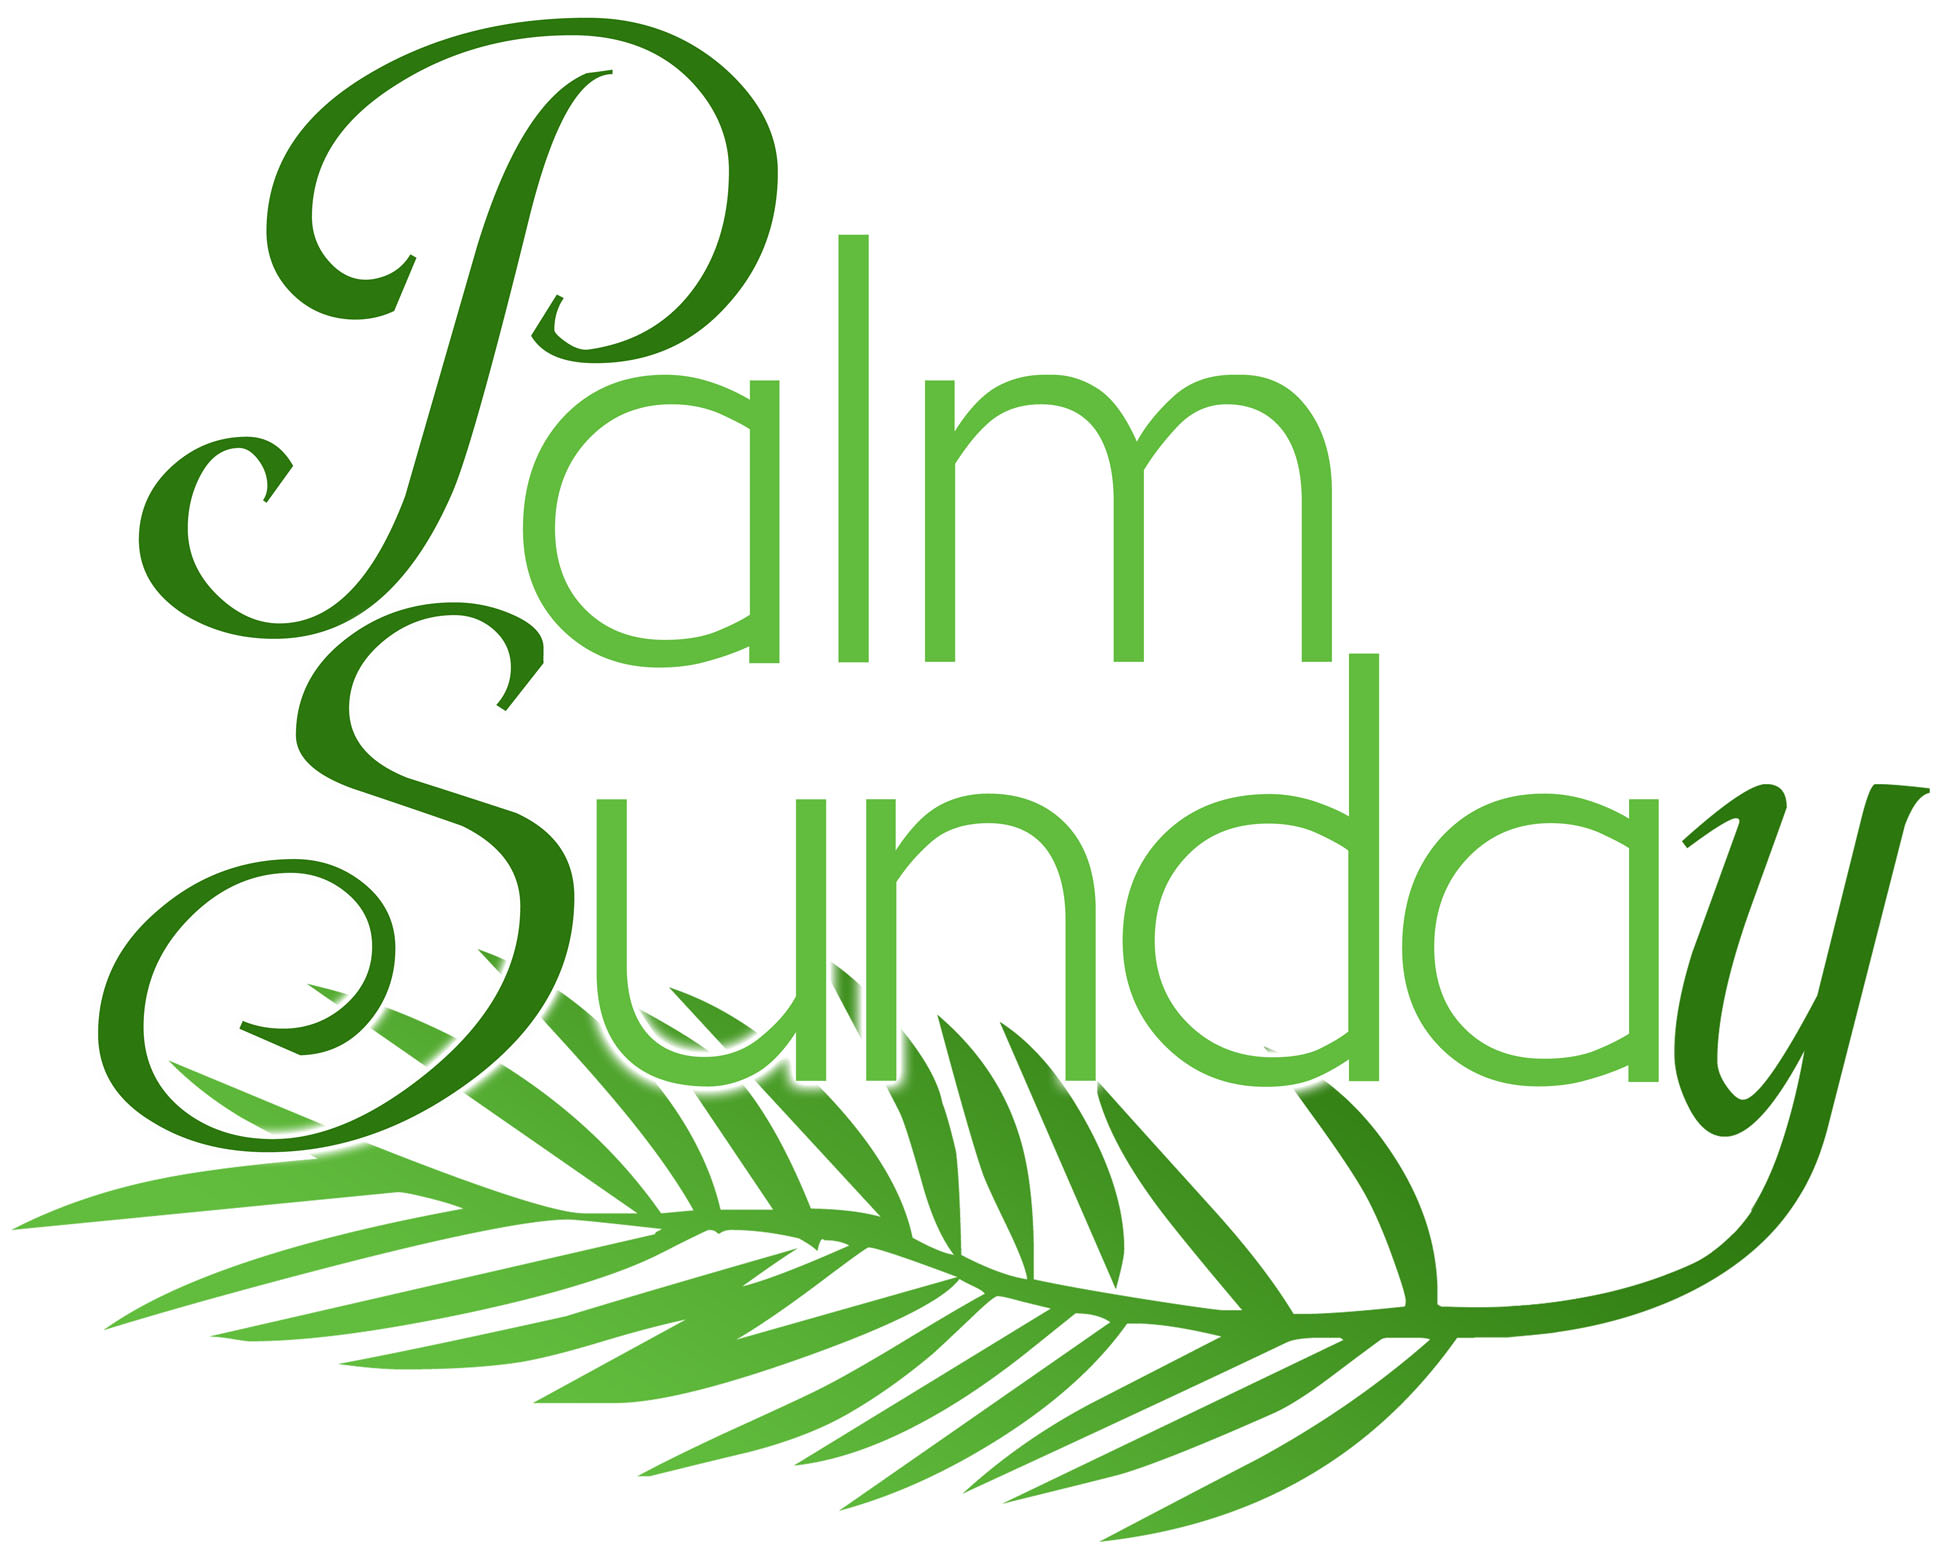 happy palm sunday wishes hosanna text image mobile pc hd wallpaper